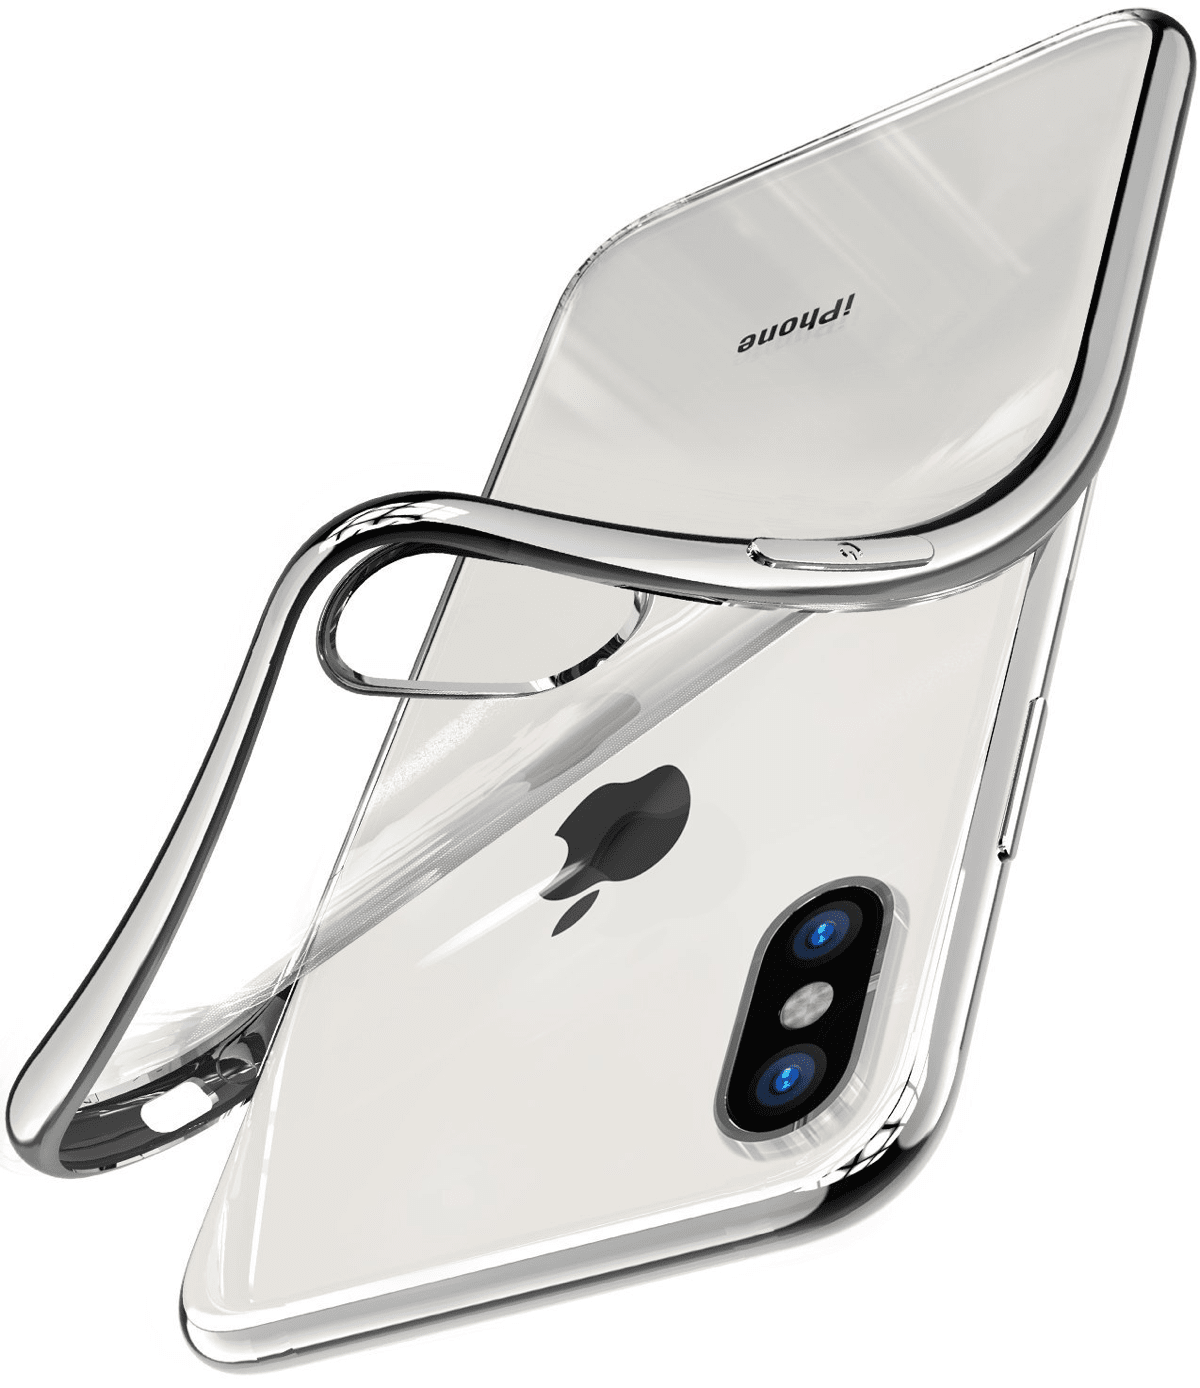 6 Clear Iphone X Cases To Show Off Your Purchase The Mac Observer Spigen Case Wallet S Leather Original Casing Tozo